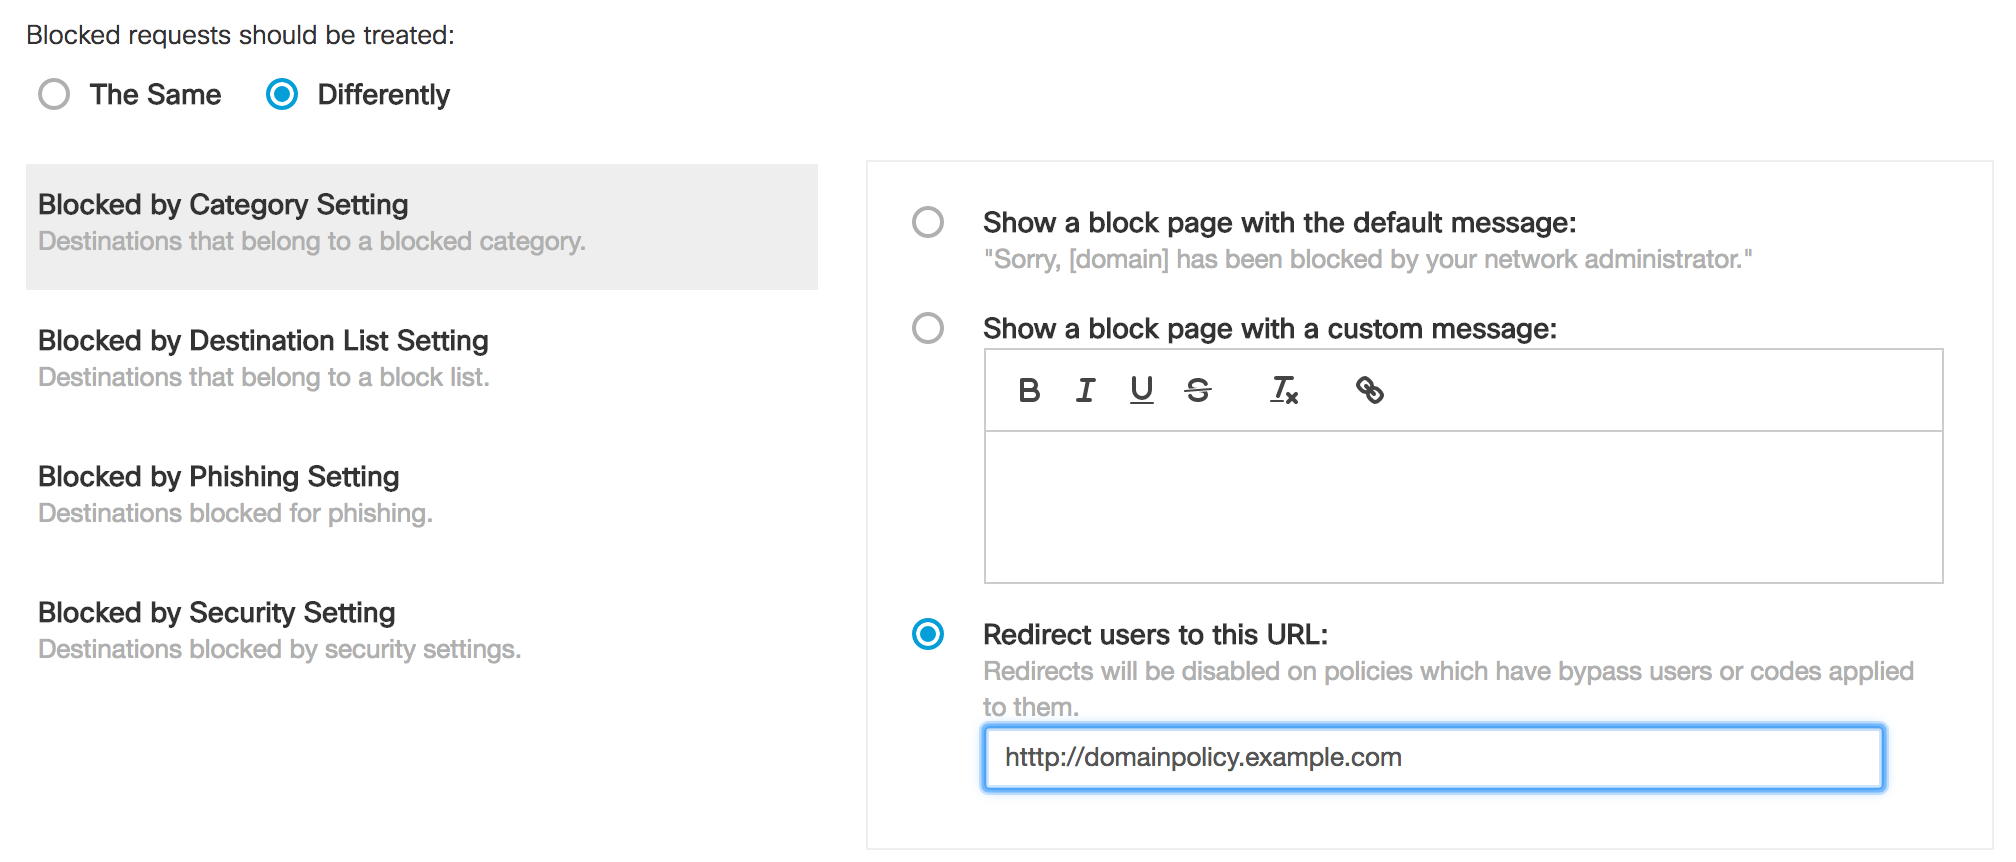 Setting up a Block Page, a Block Page Bypass User and a